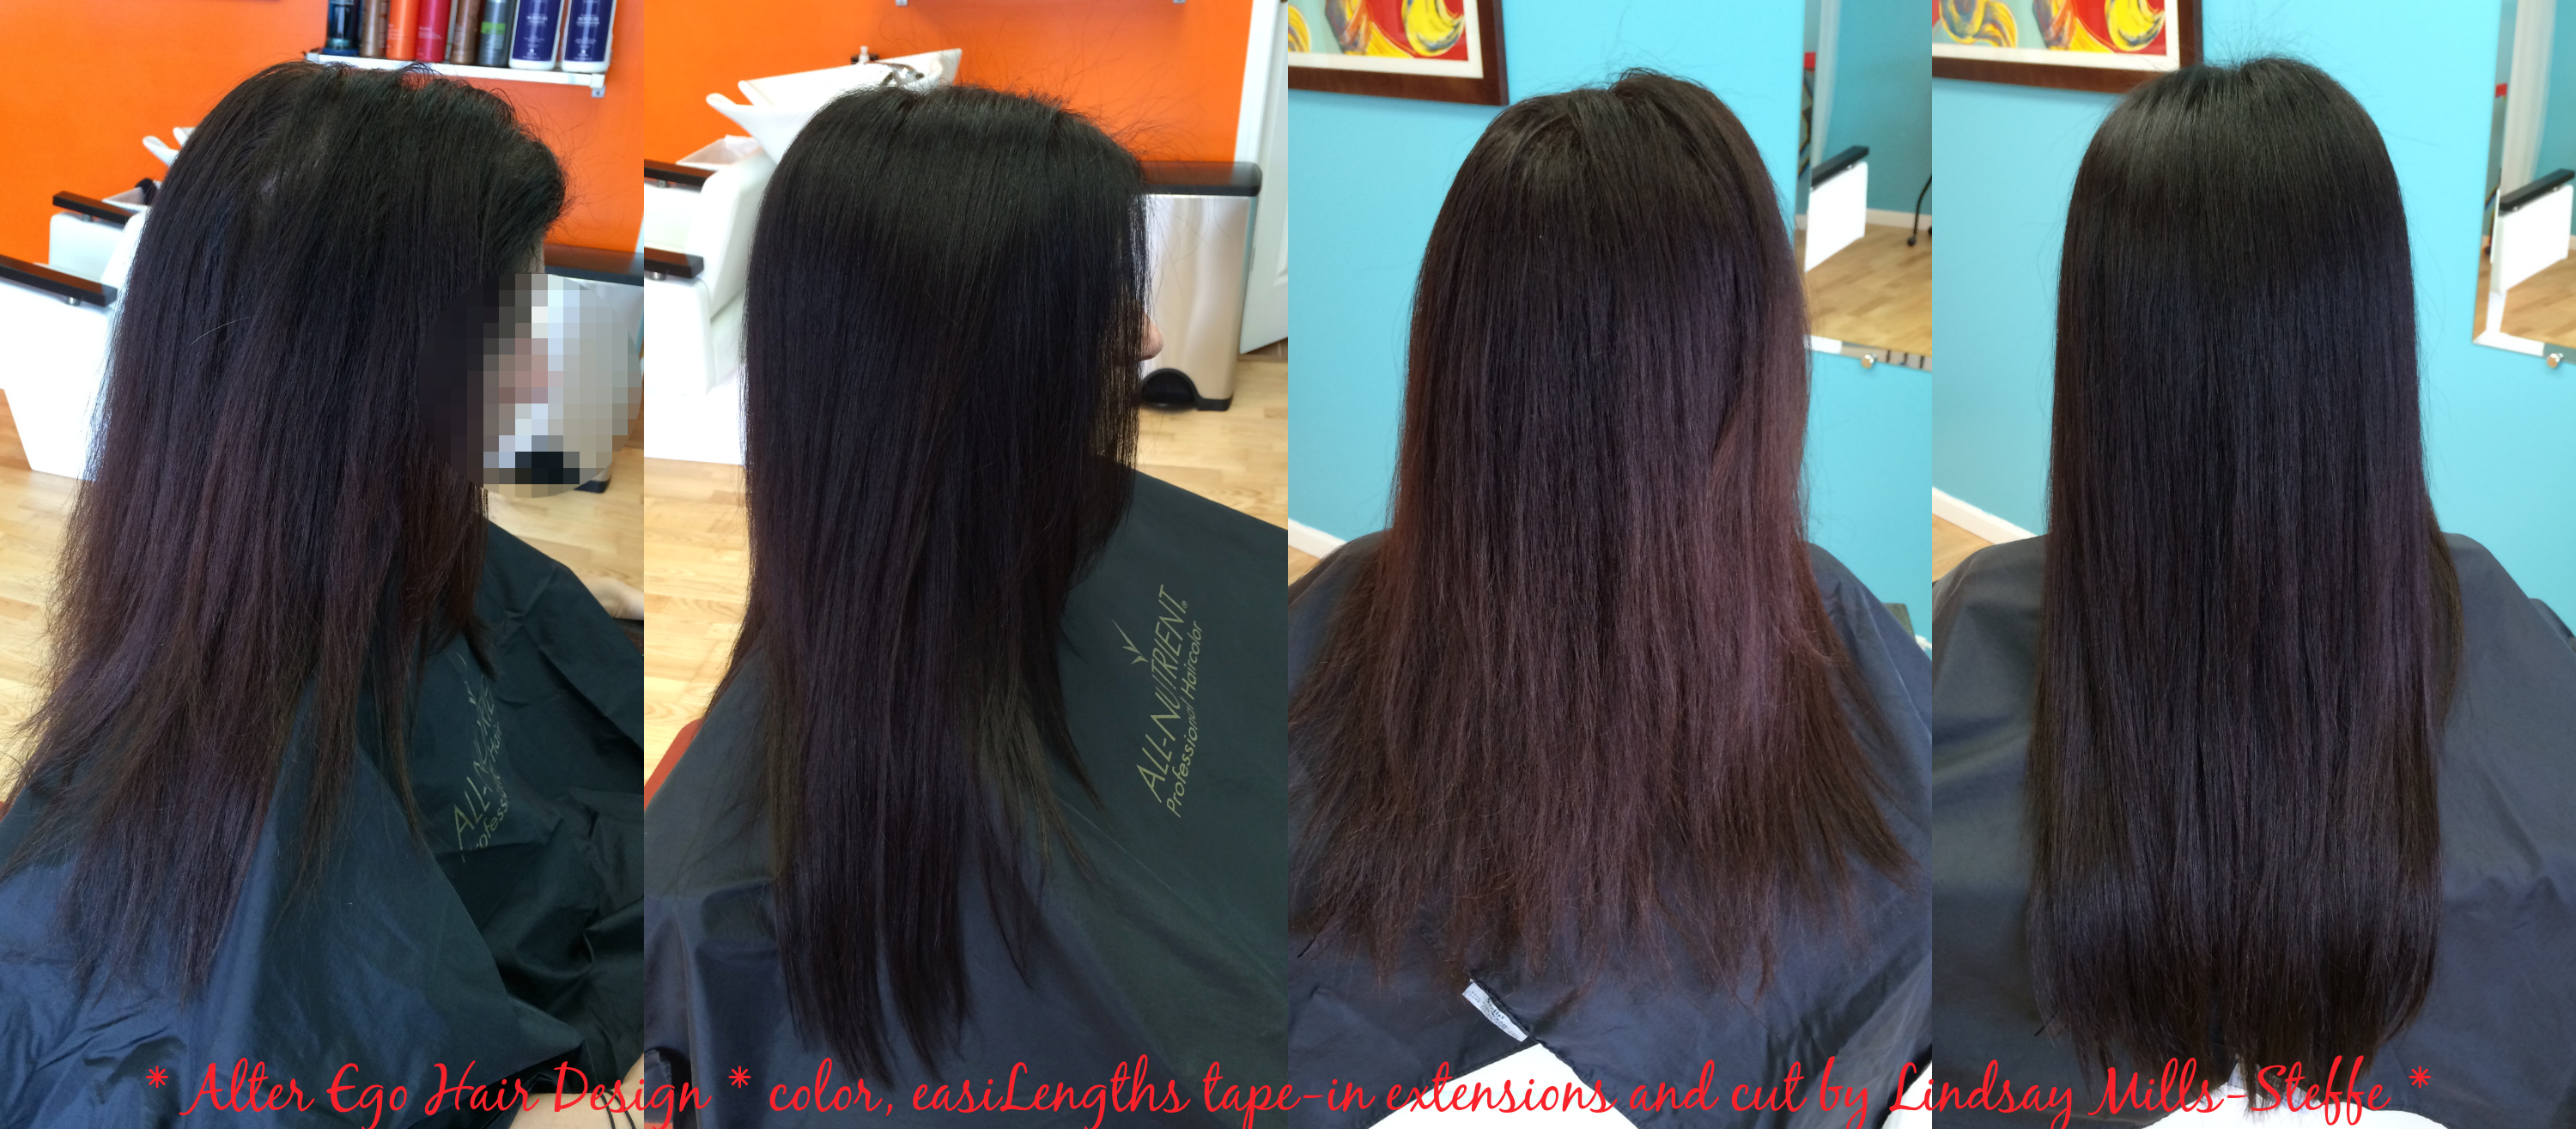 best hair extensions for thin hair in Chicago